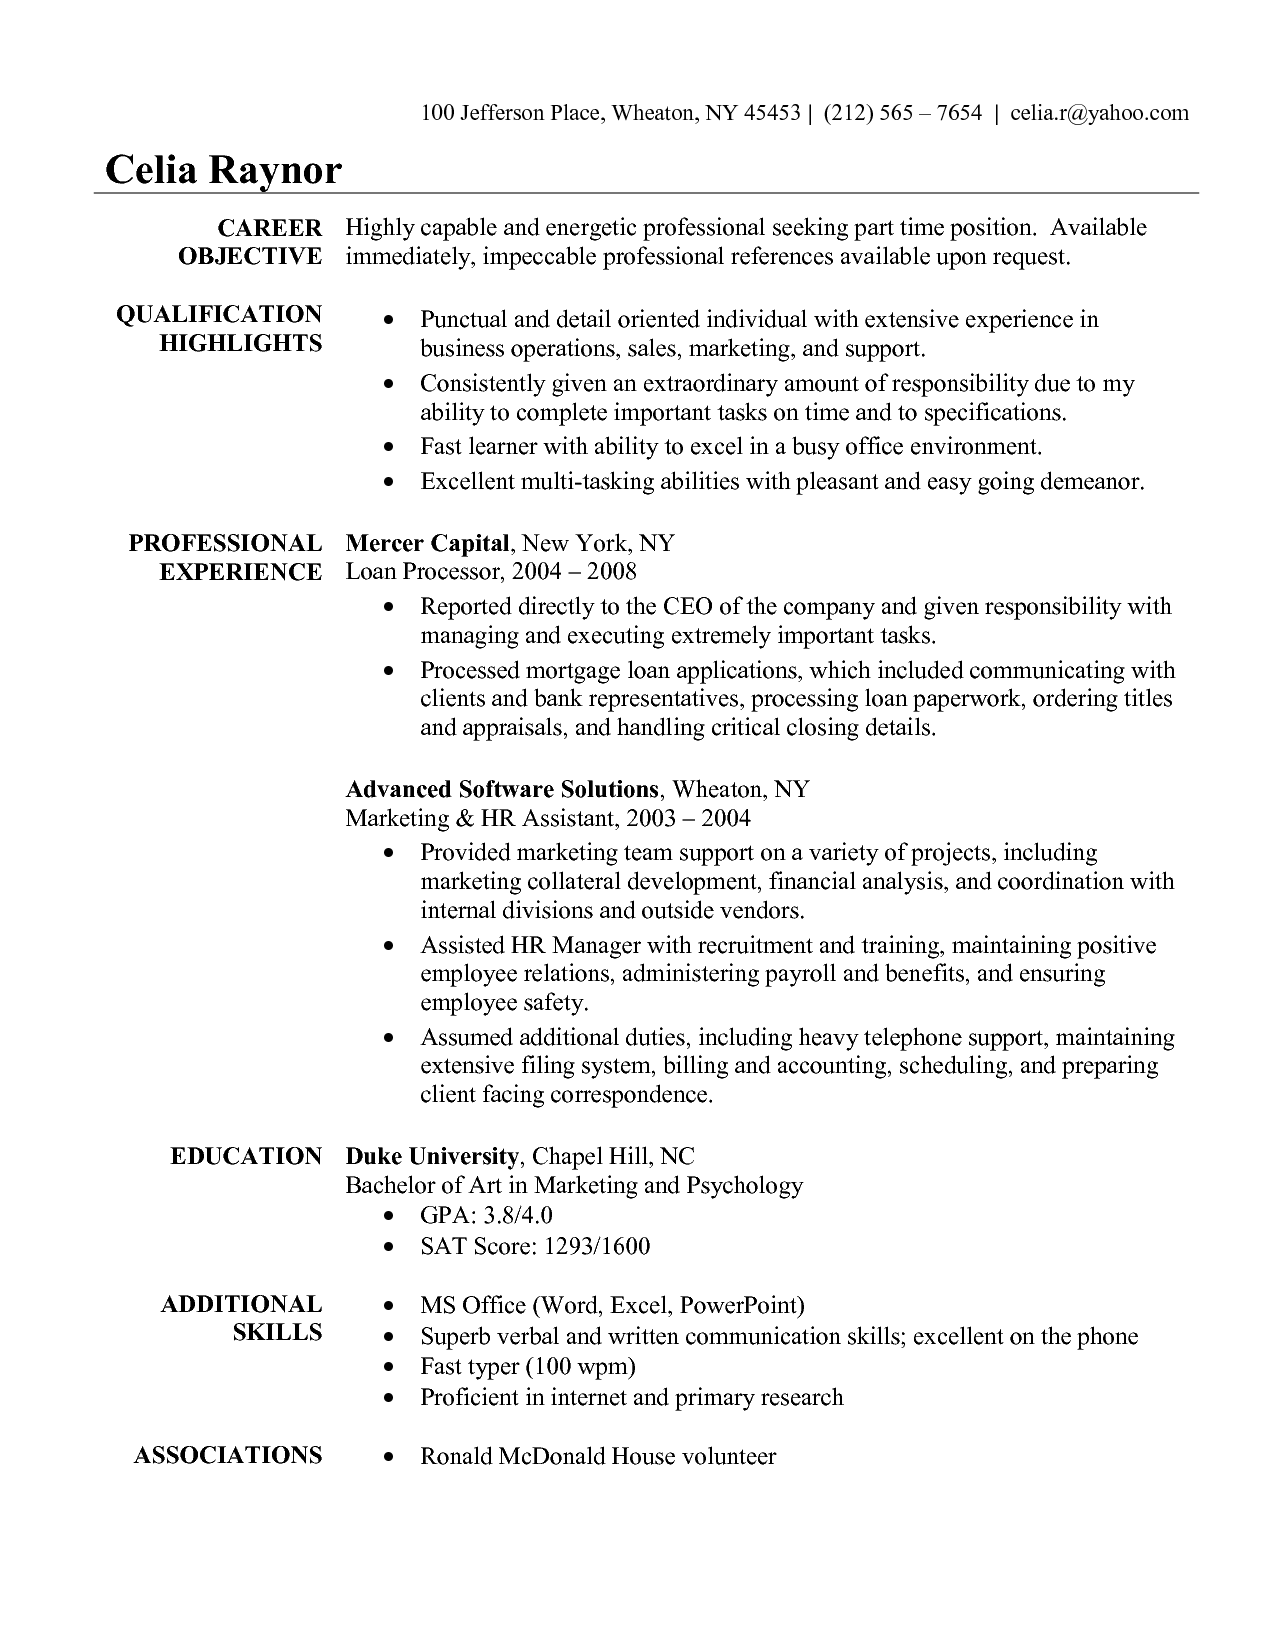 Administrative Secretary Resume Delectable Resume Sample For Administrative Assistant Resume Samples For .